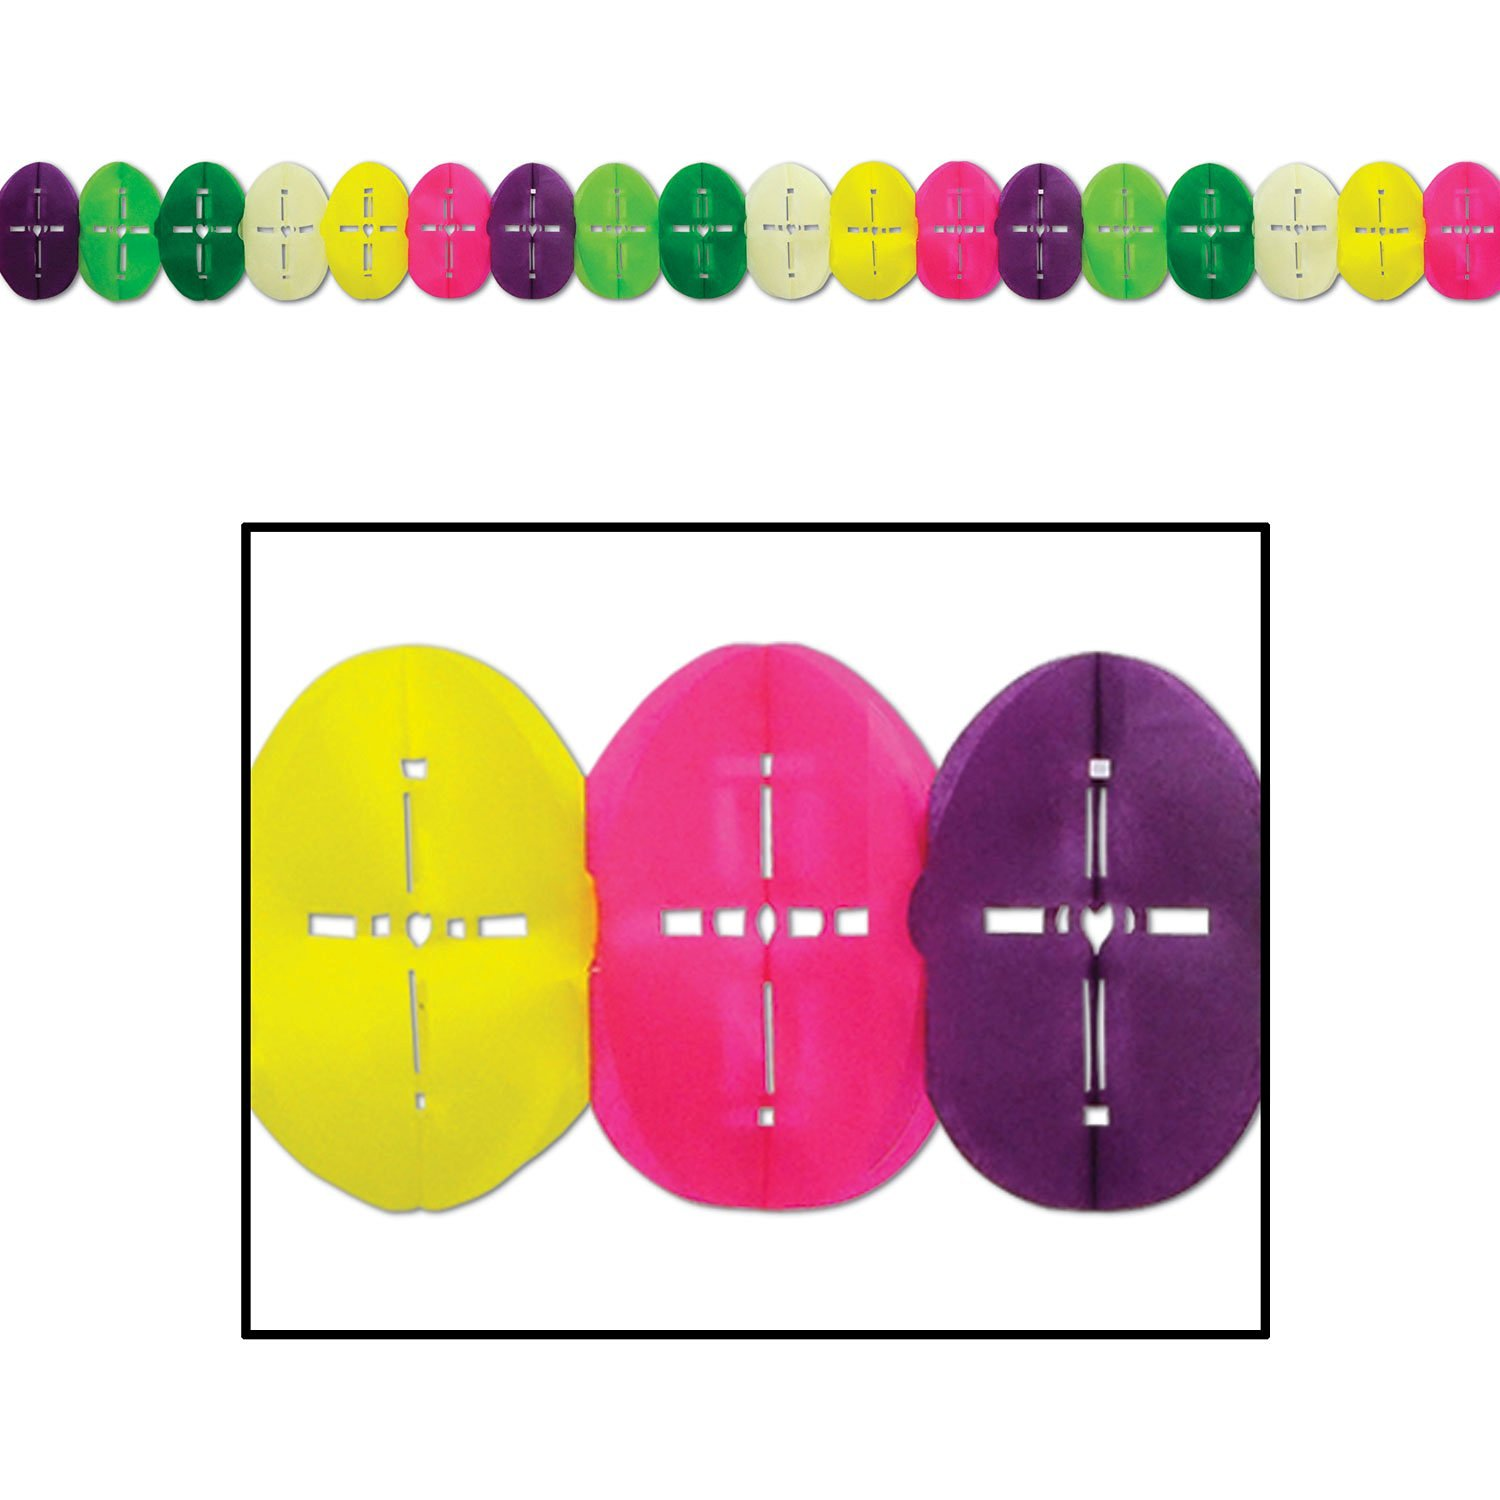 Beistle 44117 1-Pack Easter Egg Garland for Parties, 6-1/4 by 12-Feet